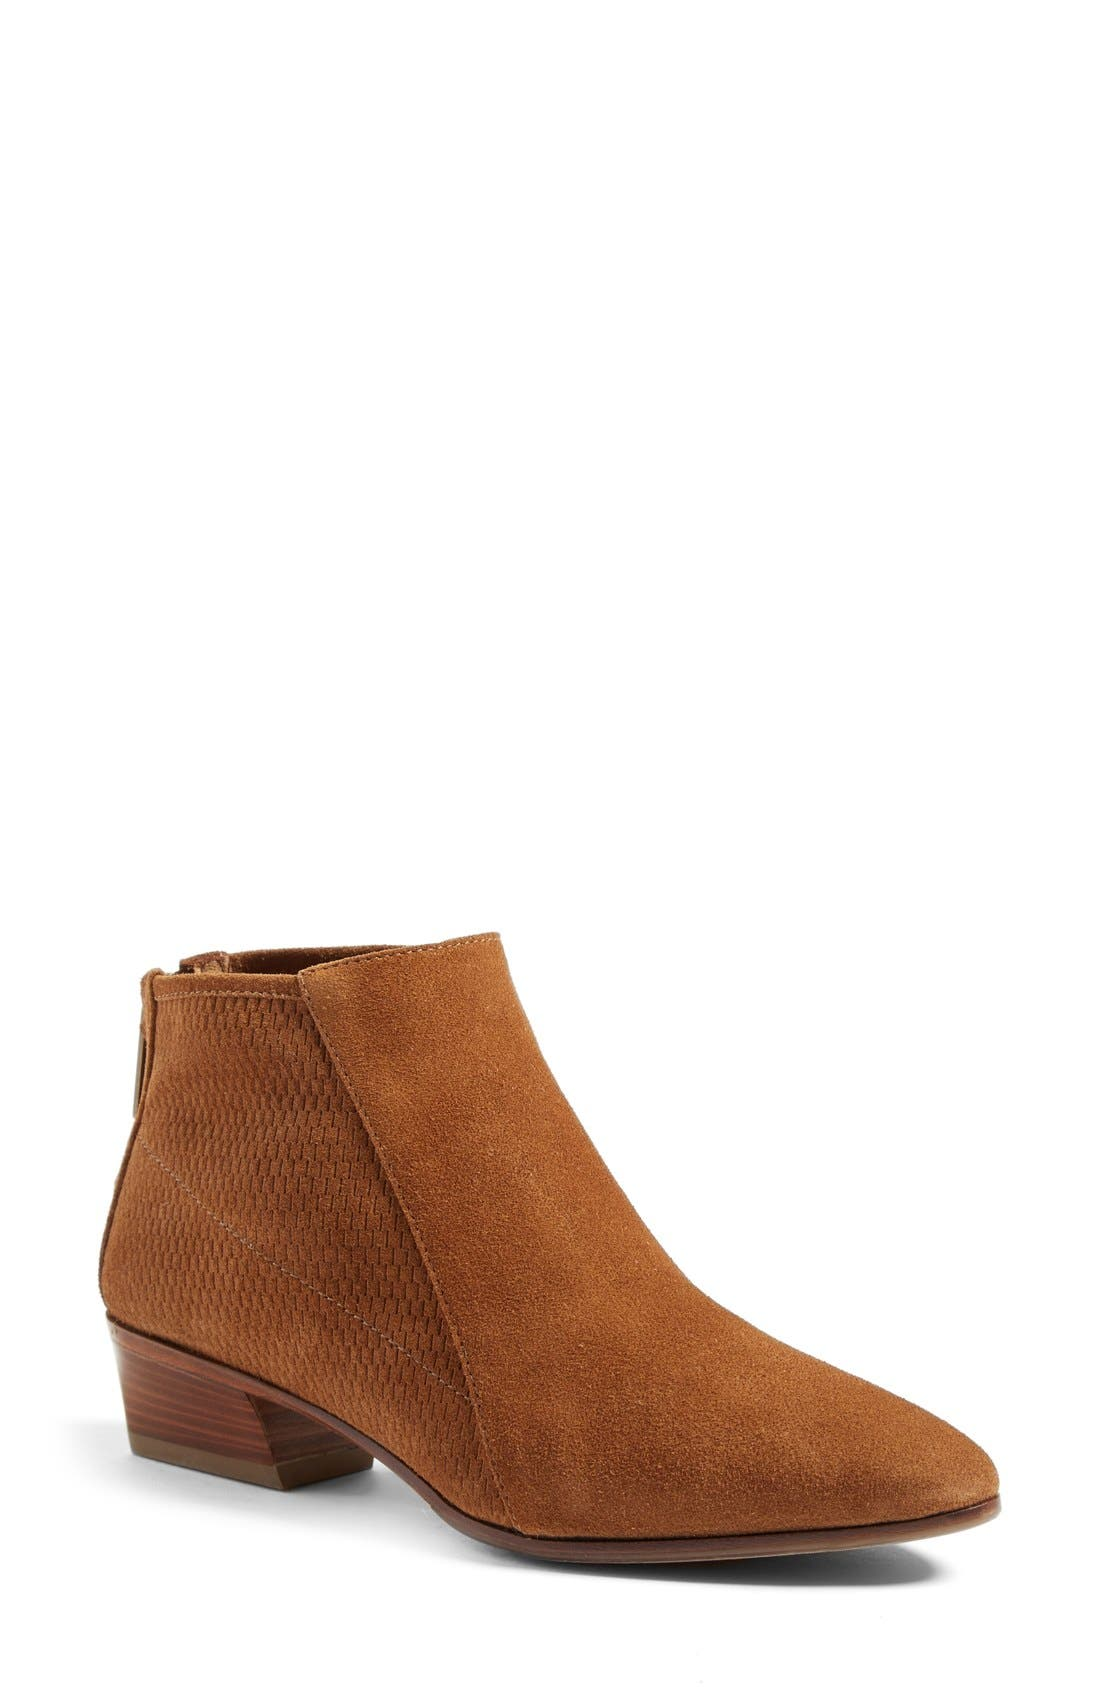 Fianna Perforated Bootie,                             Main thumbnail 2, color,